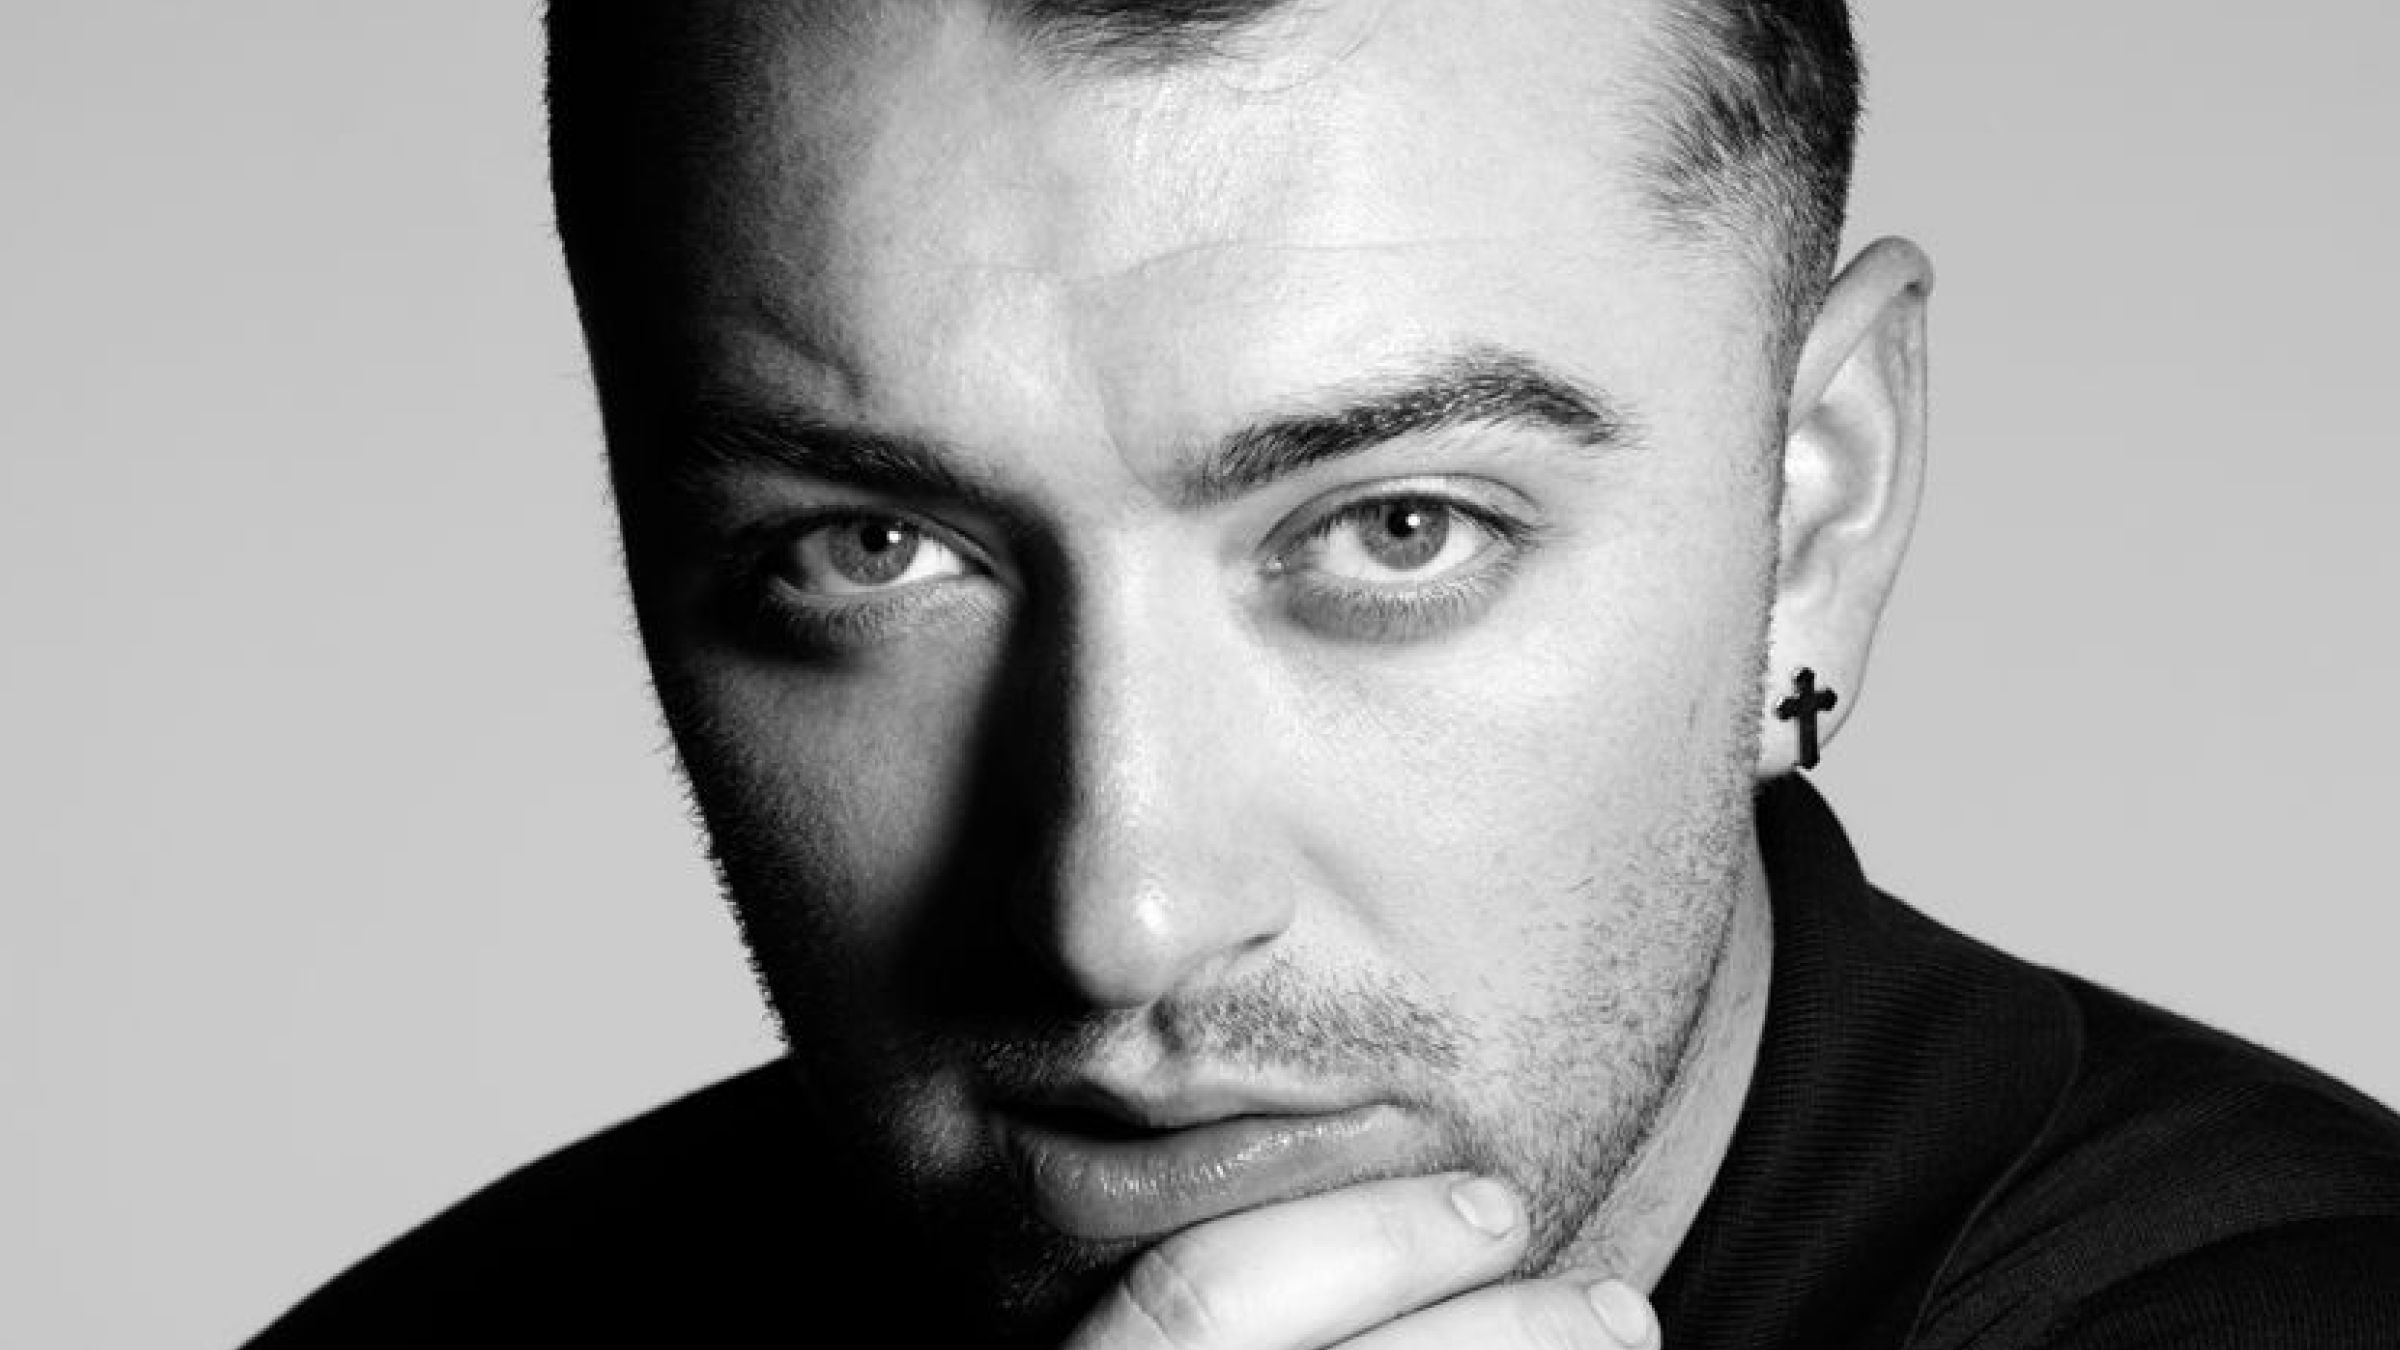 Sam.smith.apologizes.for.his.oscar.speech.01